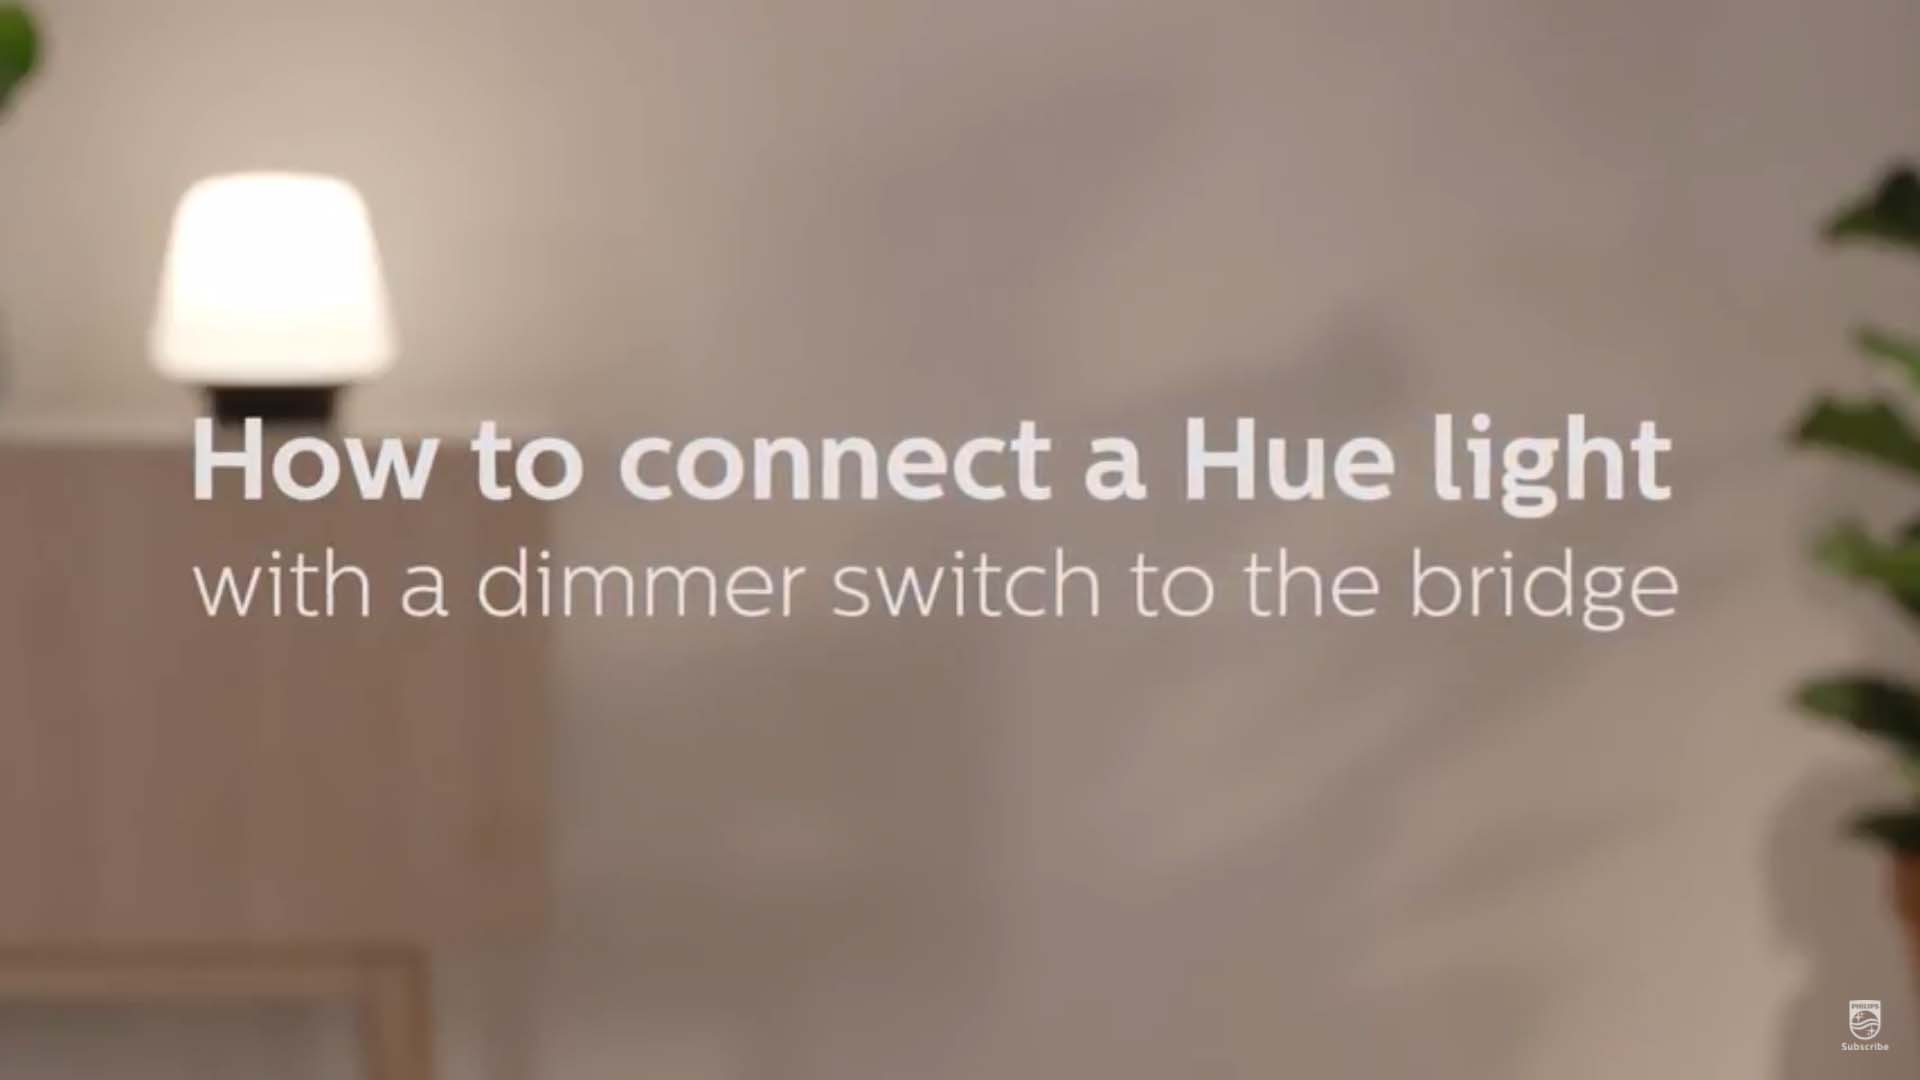 Philips Hue how to connect a Hue light with a dimmer switch to a bridge video